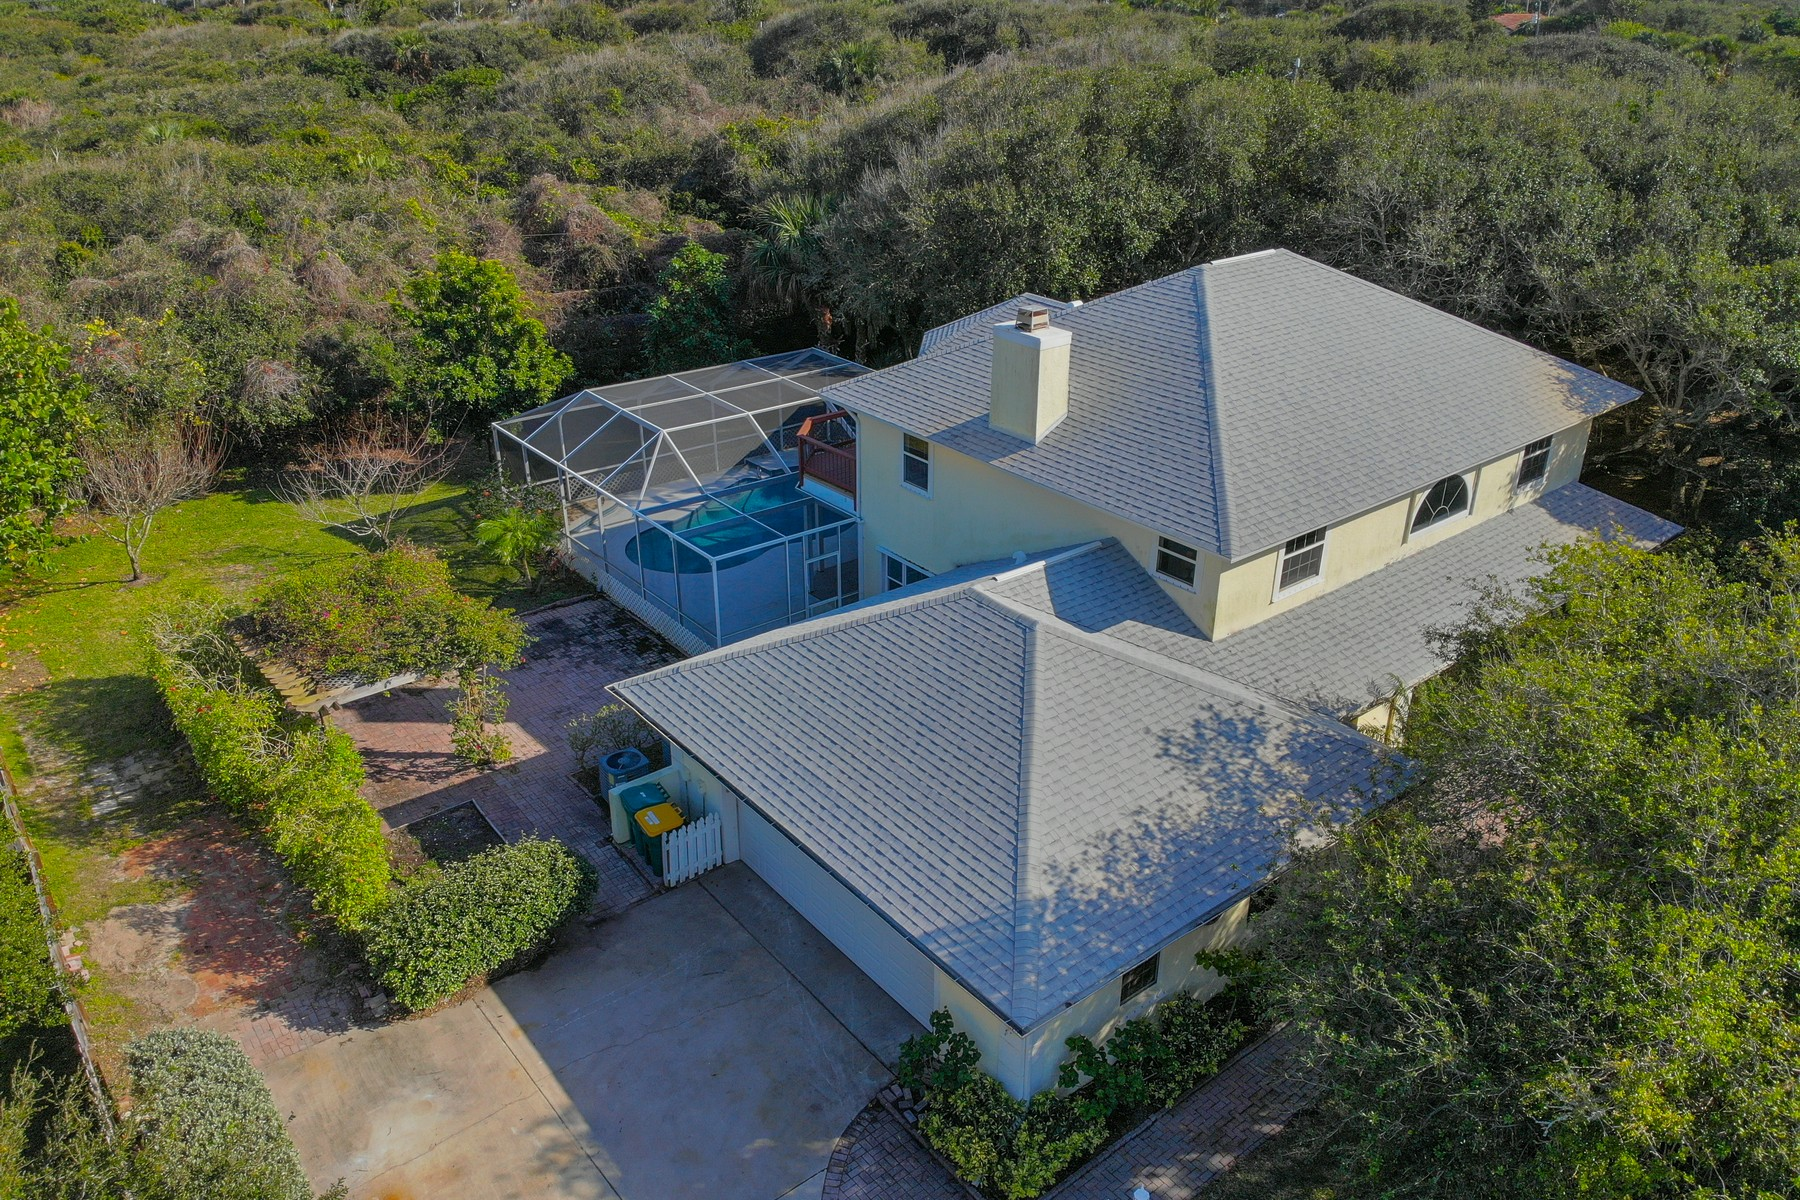 Property for Sale at Rare Beachside Home on a Half Acre Lot with Large Pool & Lanai 301 Indian Mound Drive Melbourne Beach, Florida 32951 United States